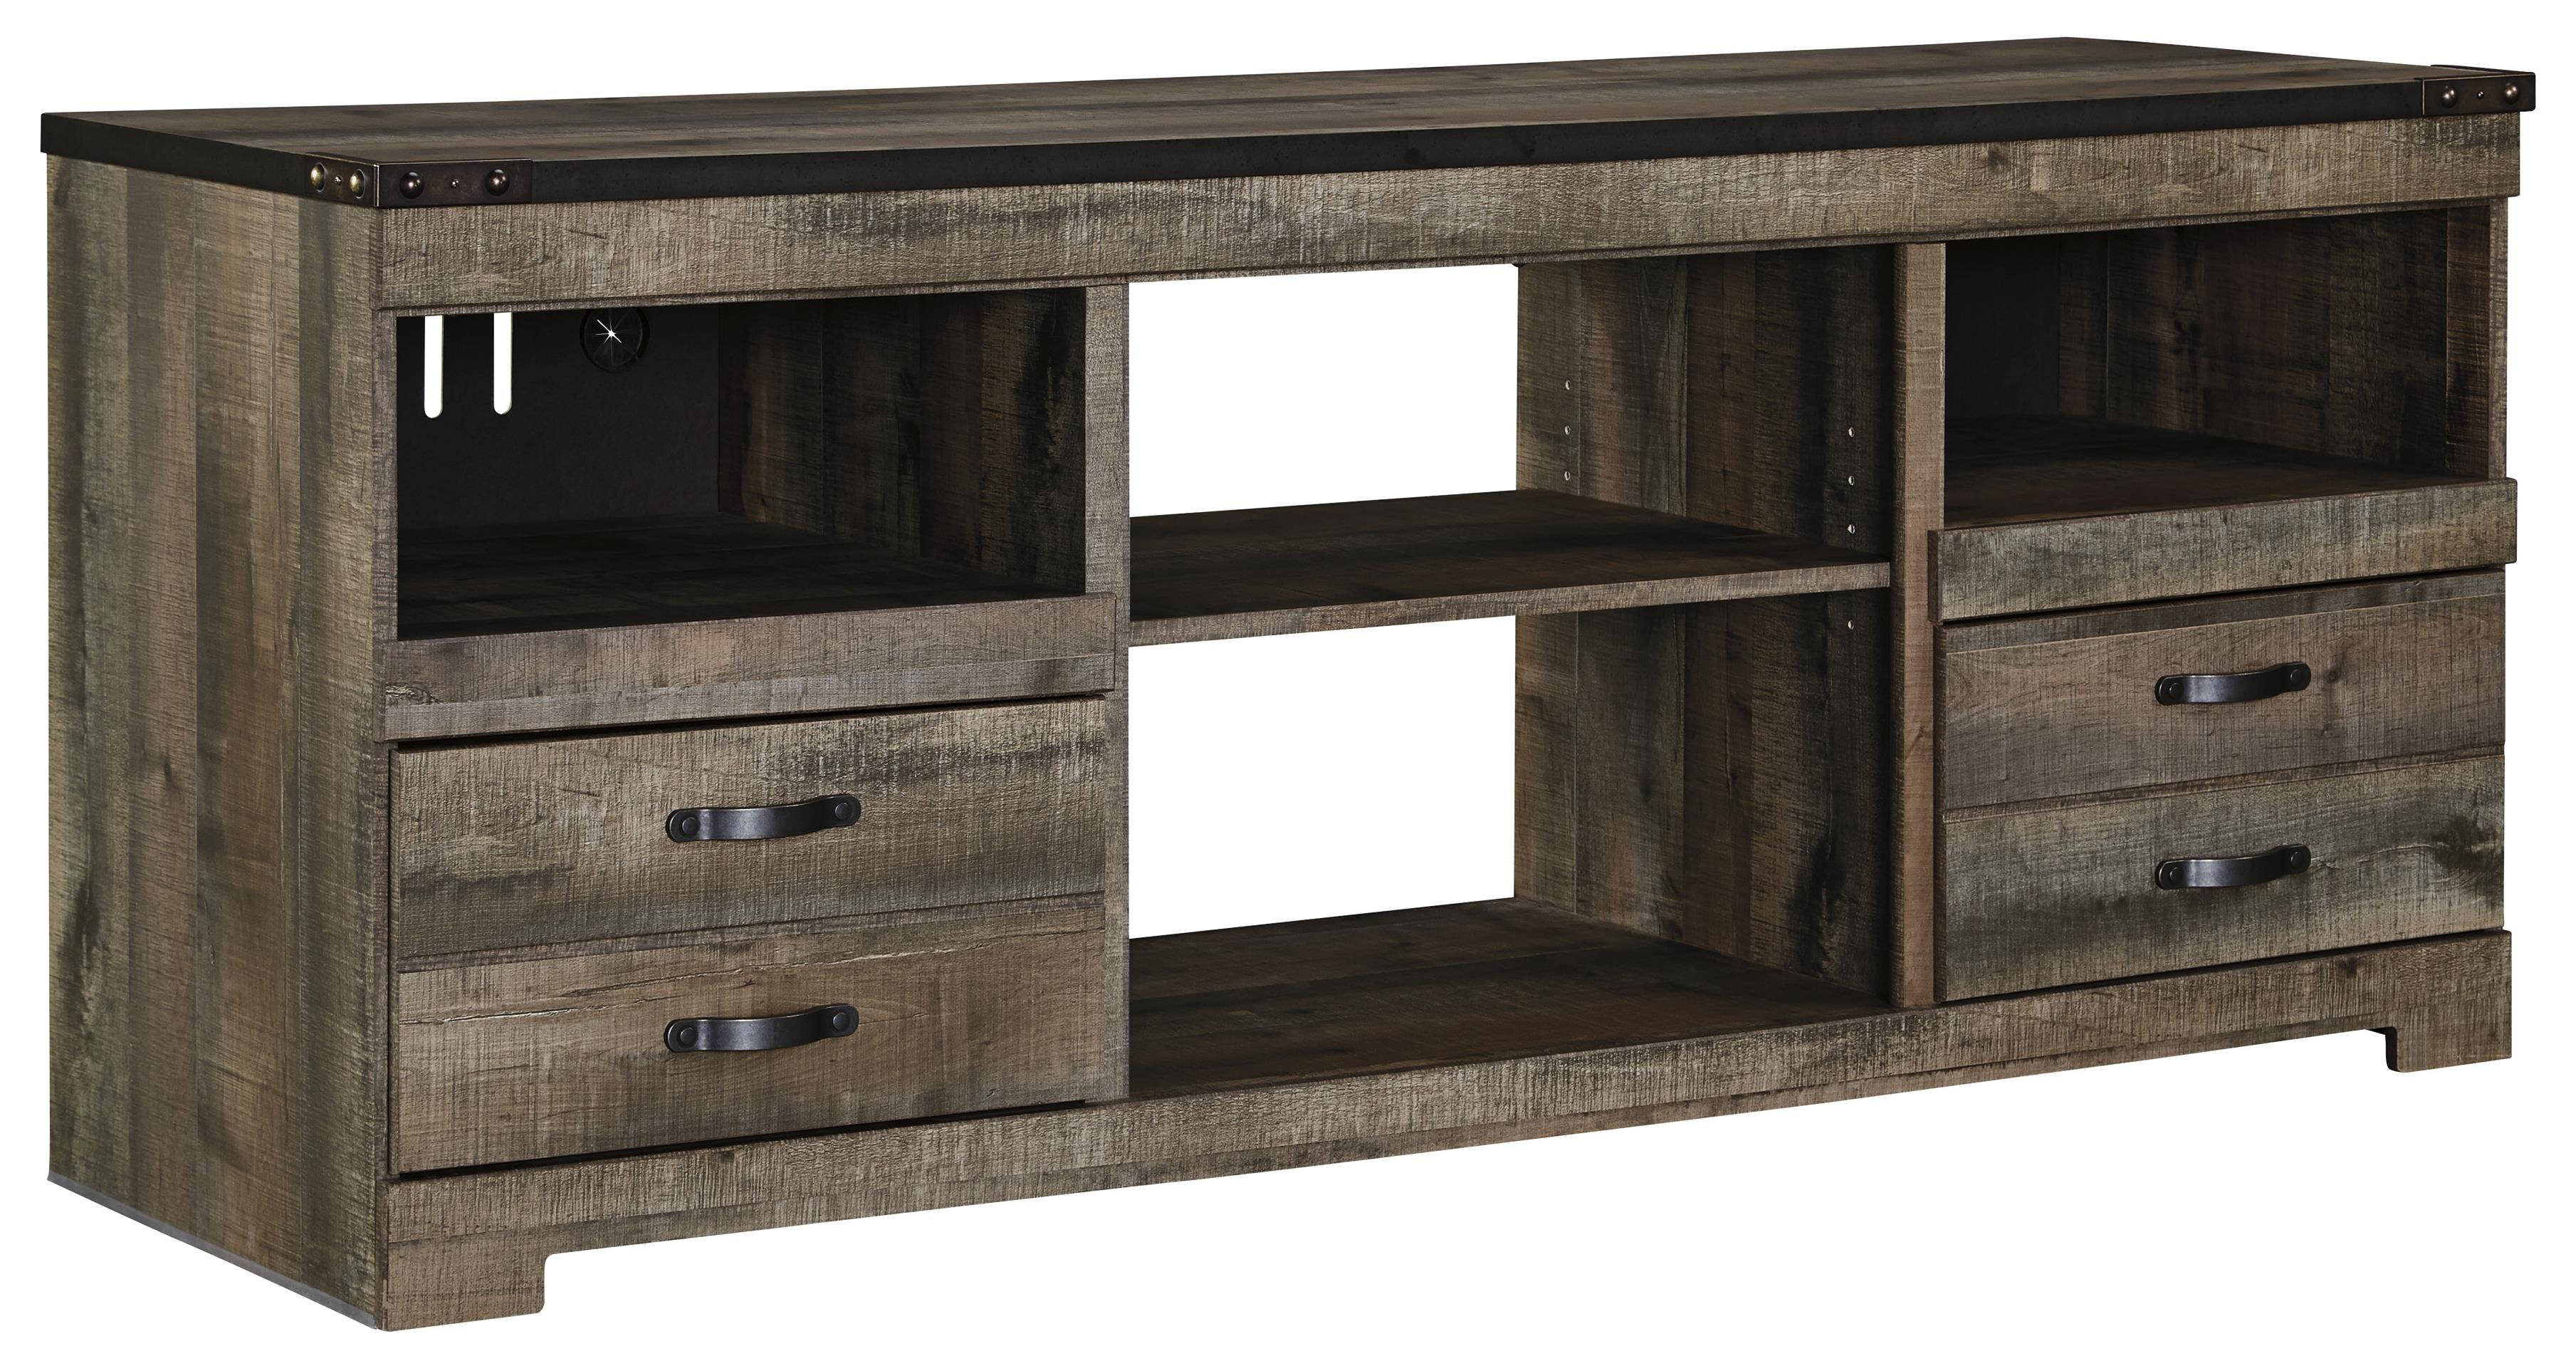 Signature design by ashley trinell rustic large tv stand Rustic tv stands